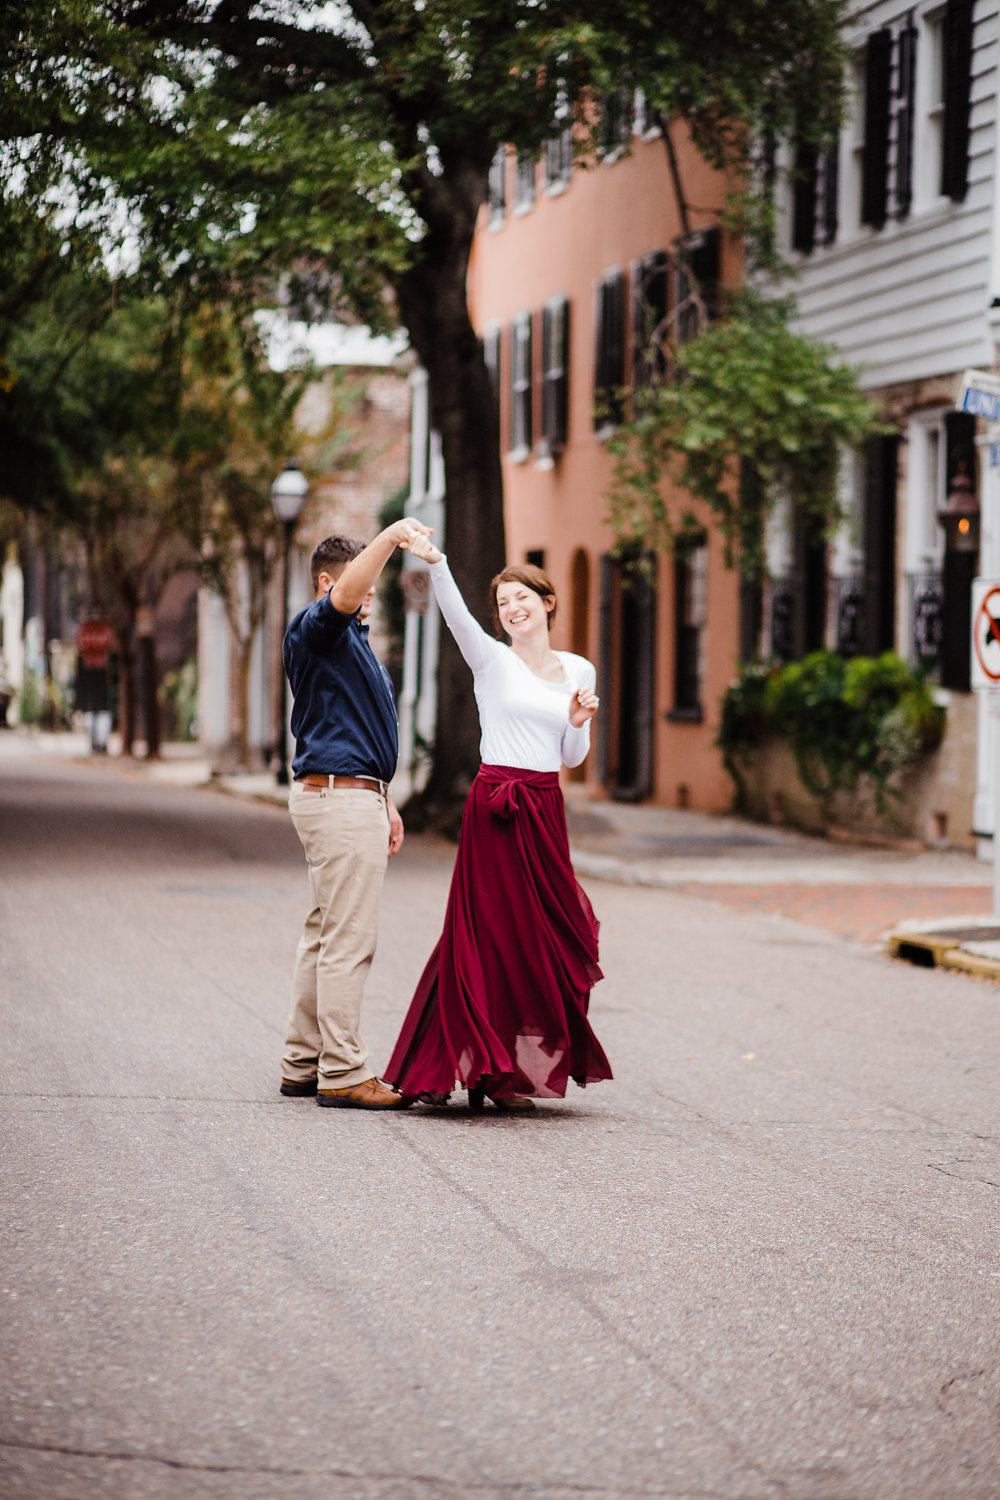 Downtown Charleston Engagement Photos — The Overwhelmed Bride Wedding Blog